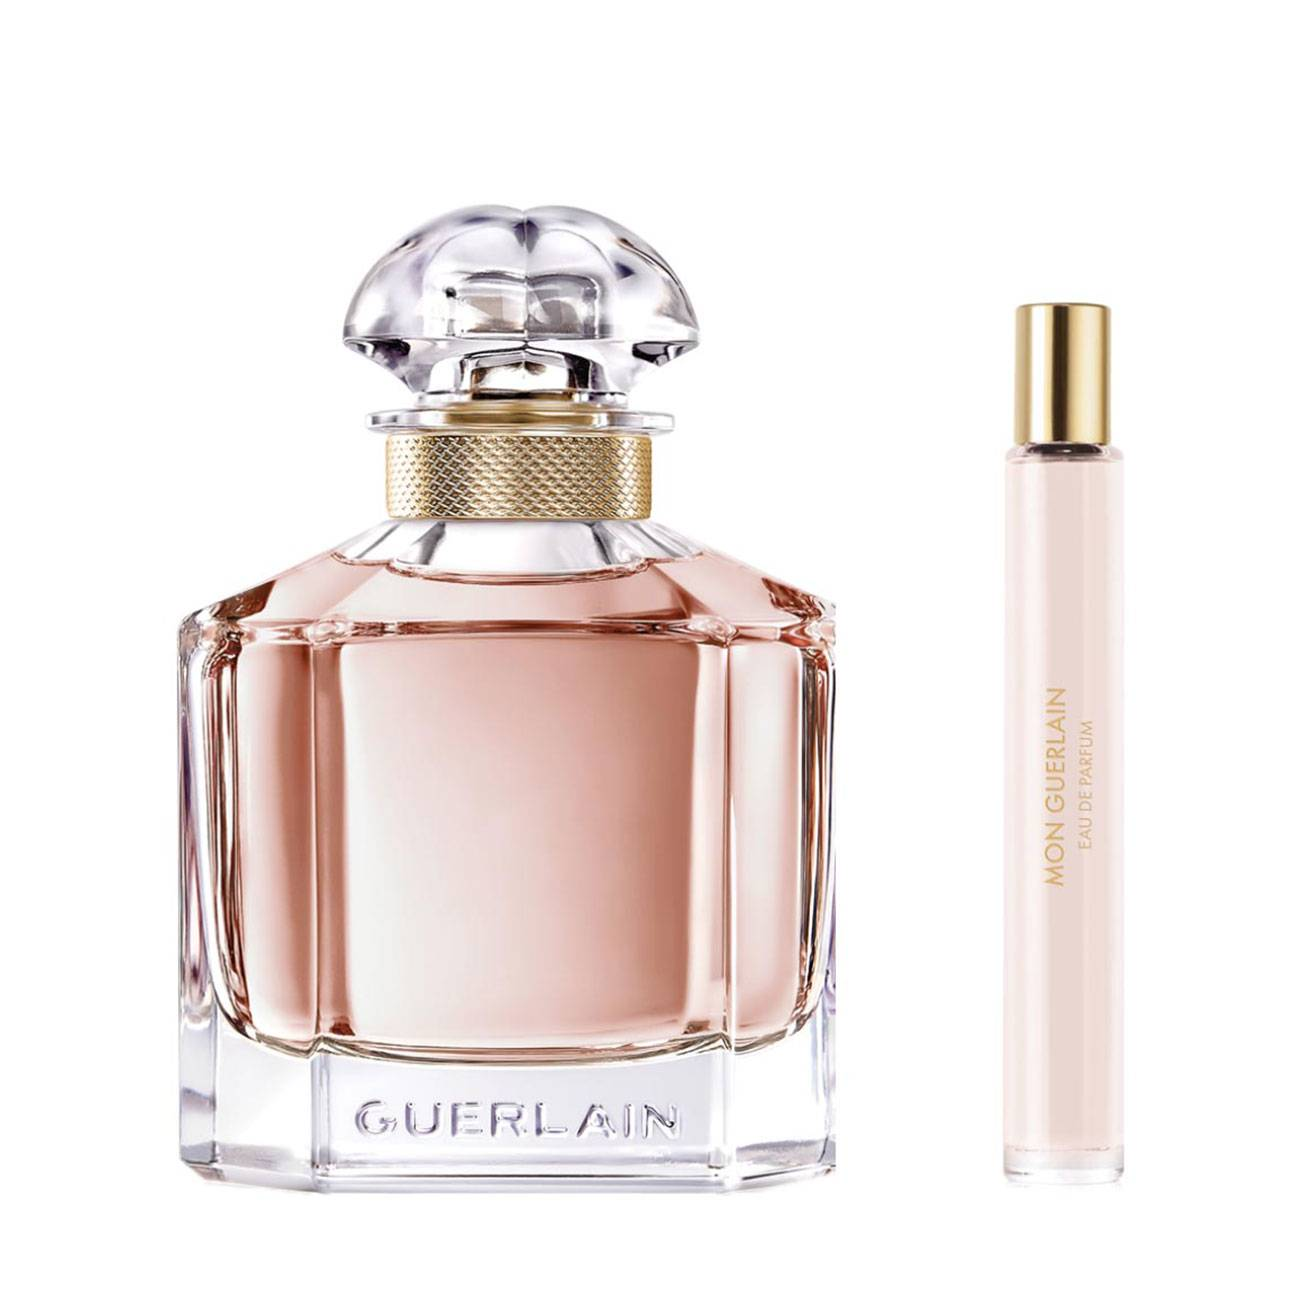 MON GUERLAIN SET 110ml imagine produs